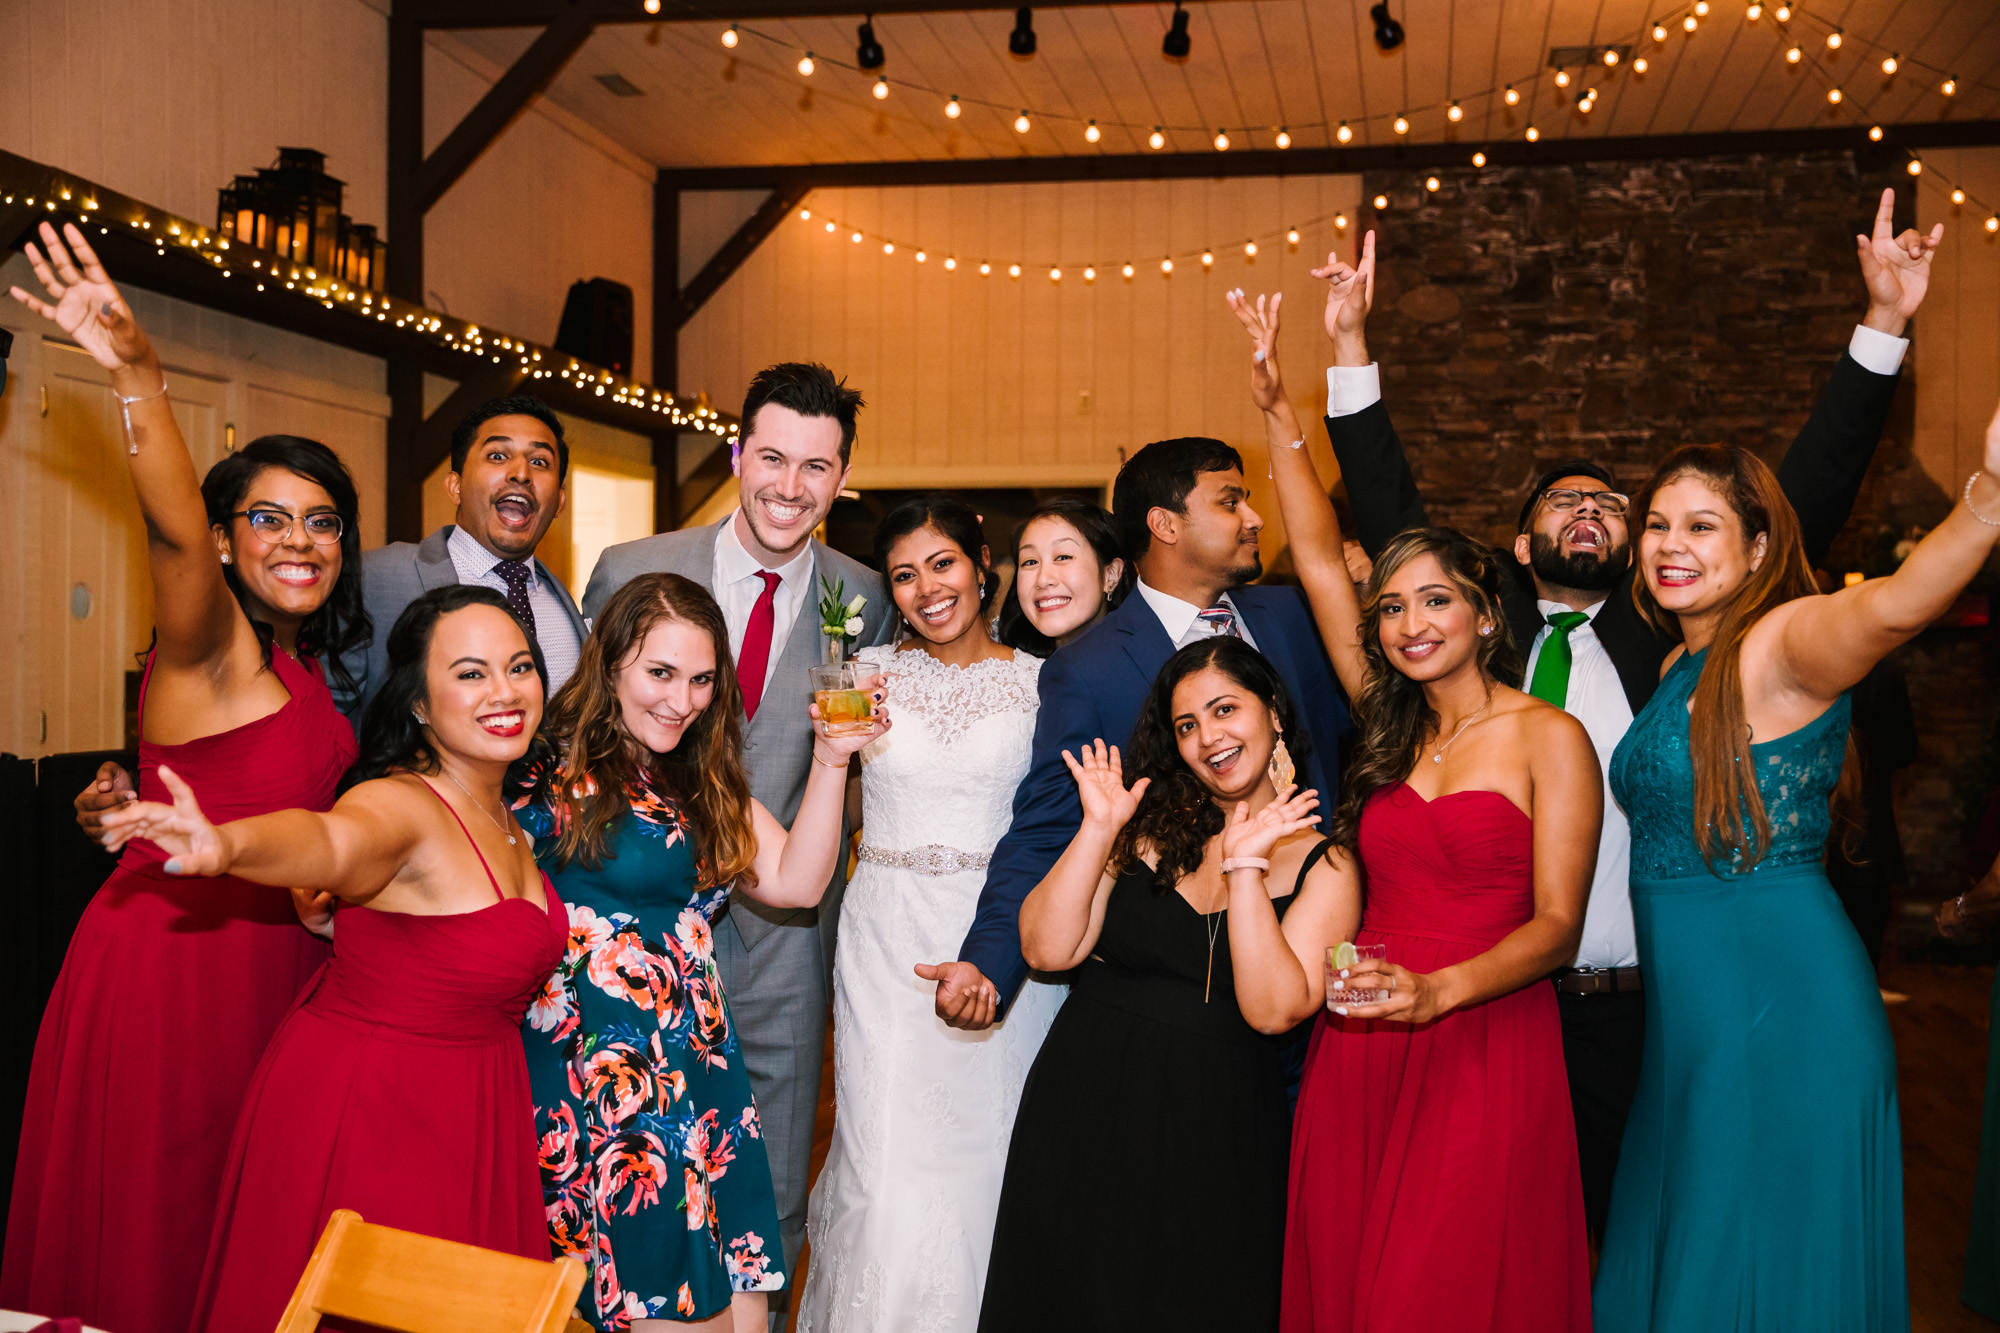 Waynesville NC Wedding Photography | Bride and Groom Pose with Guests on the Dance floor